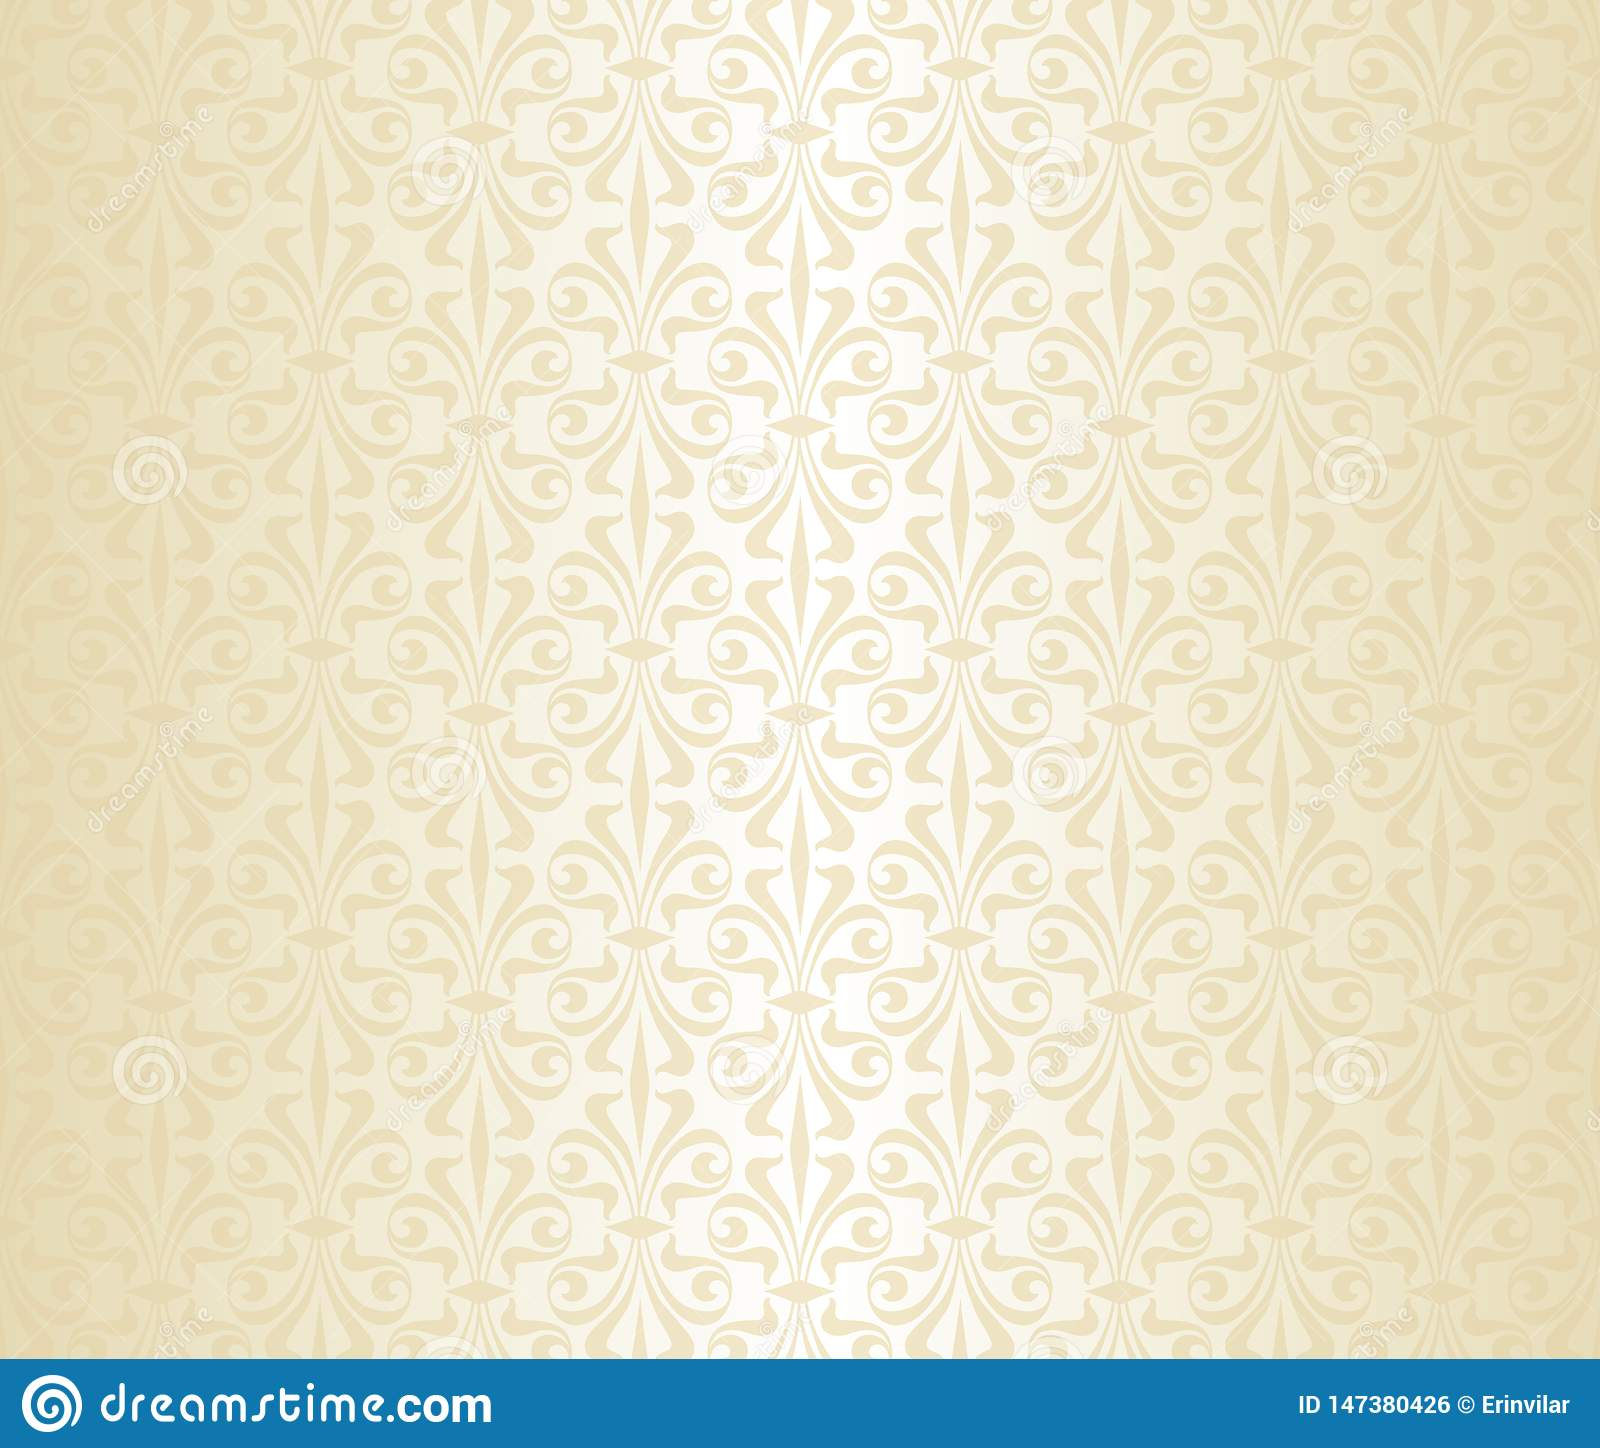 bright luxury vintage wallpaper bridal gold bright wedding stock vector illustration of abstract baroque 147380426 https www dreamstime com bright luxury vintage wallpaper vector fashion background bridal gold bright wedding bright luxury vintage wallpaper bridal gold image147380426